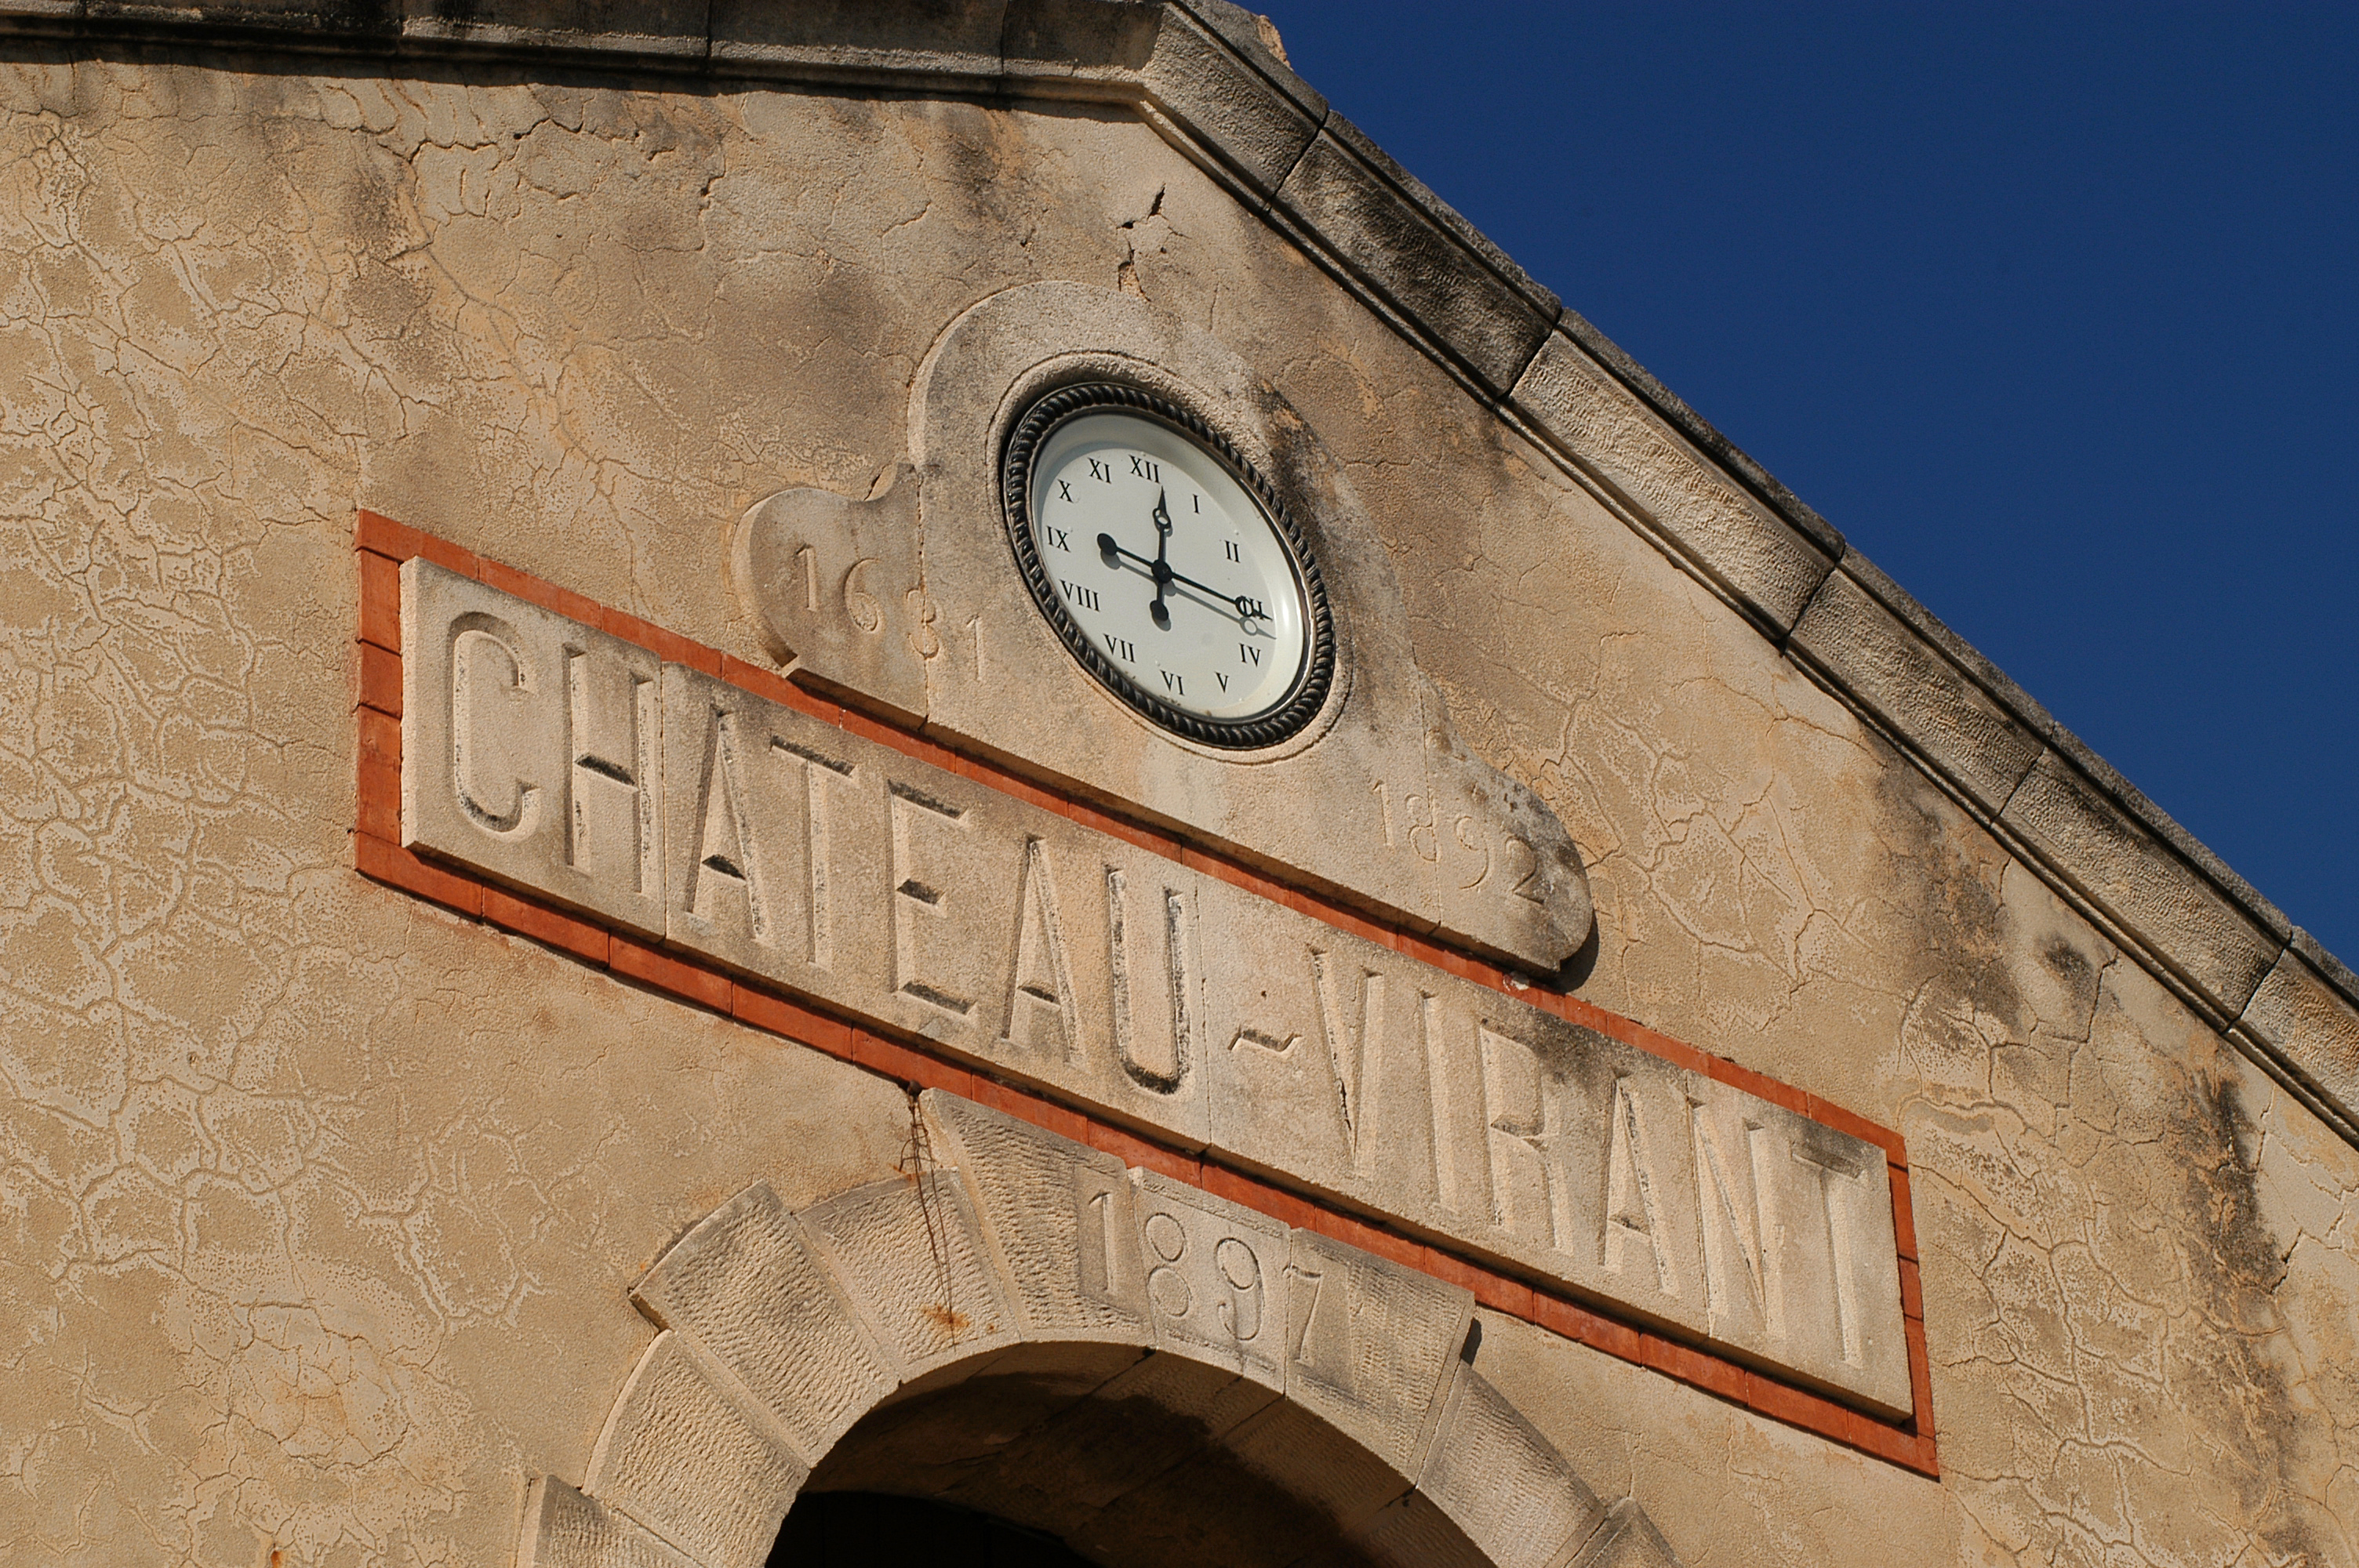 A clock on the wall of the winery at Château Virant